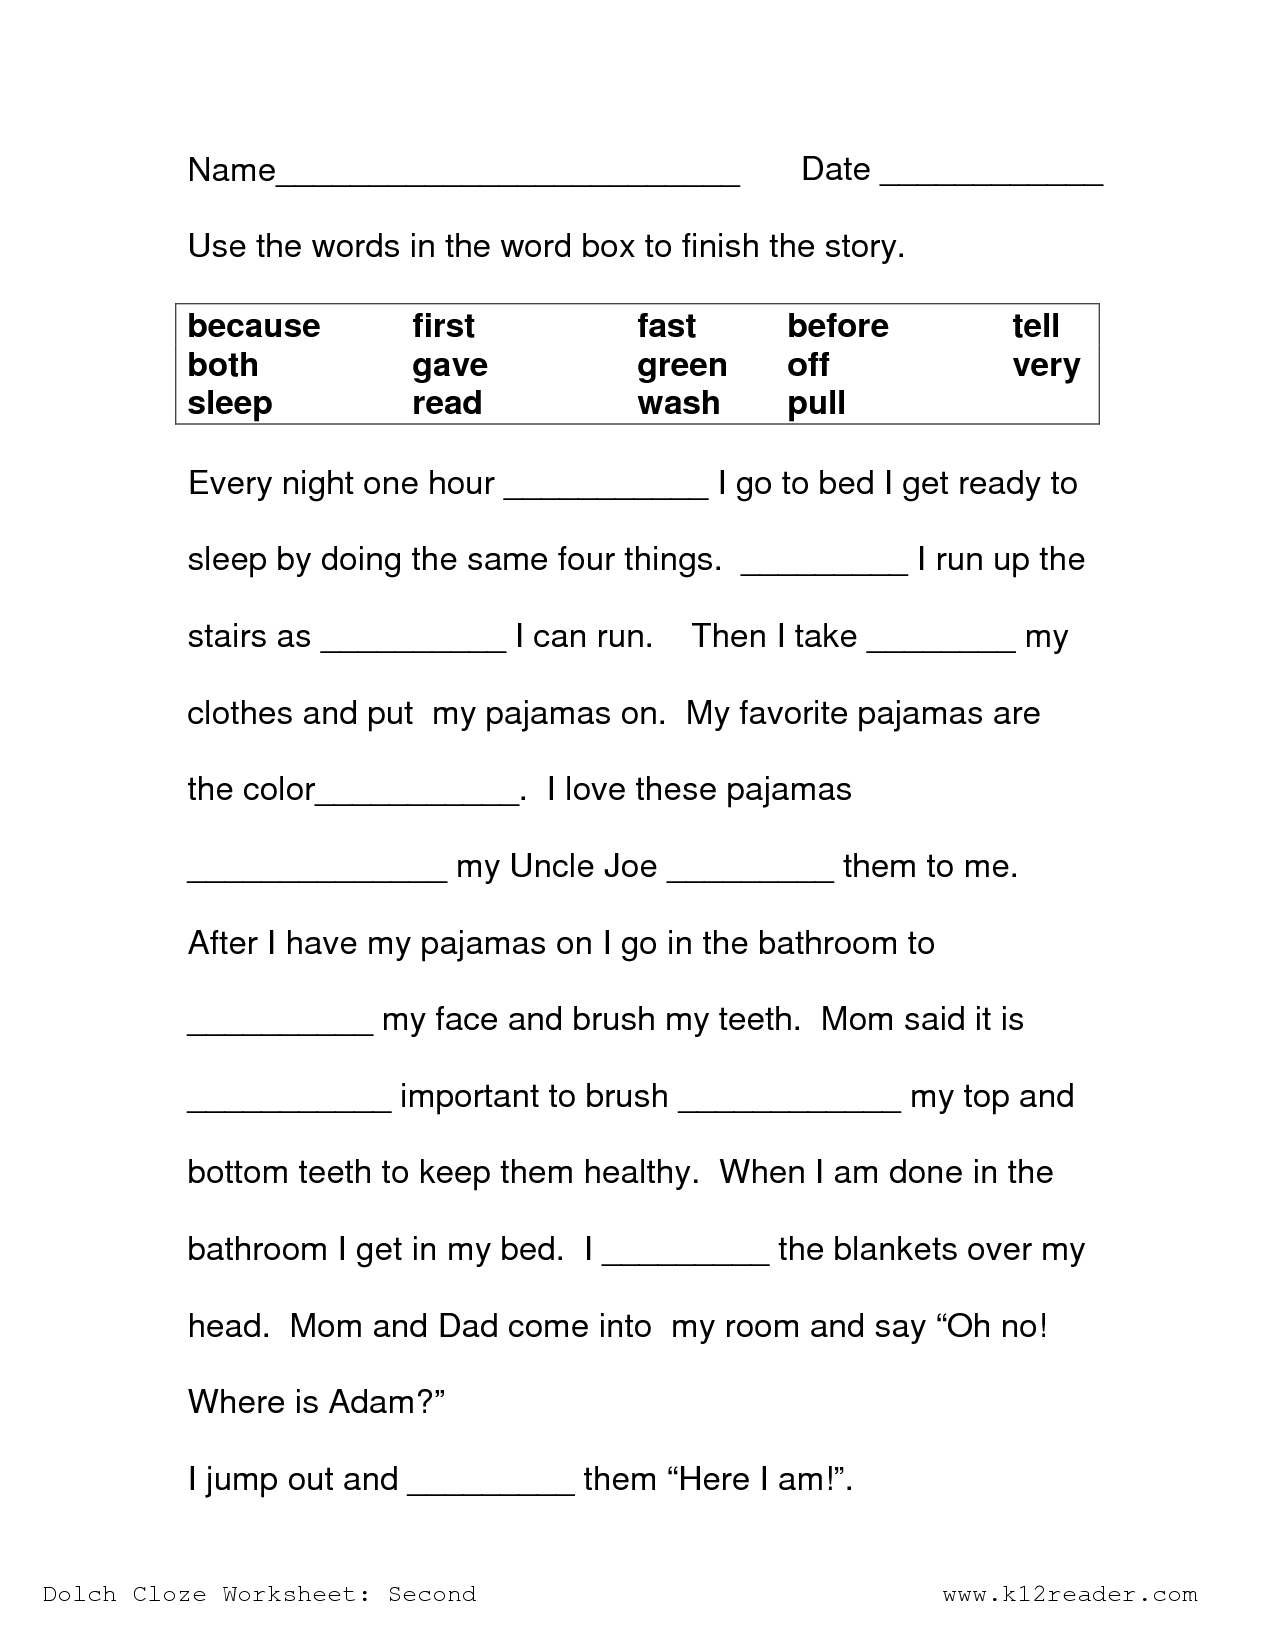 Worksheet 2nd Grade Reading Comprehension Worksheets Free reading worksheets 2nd grade pichaglobal k5 related